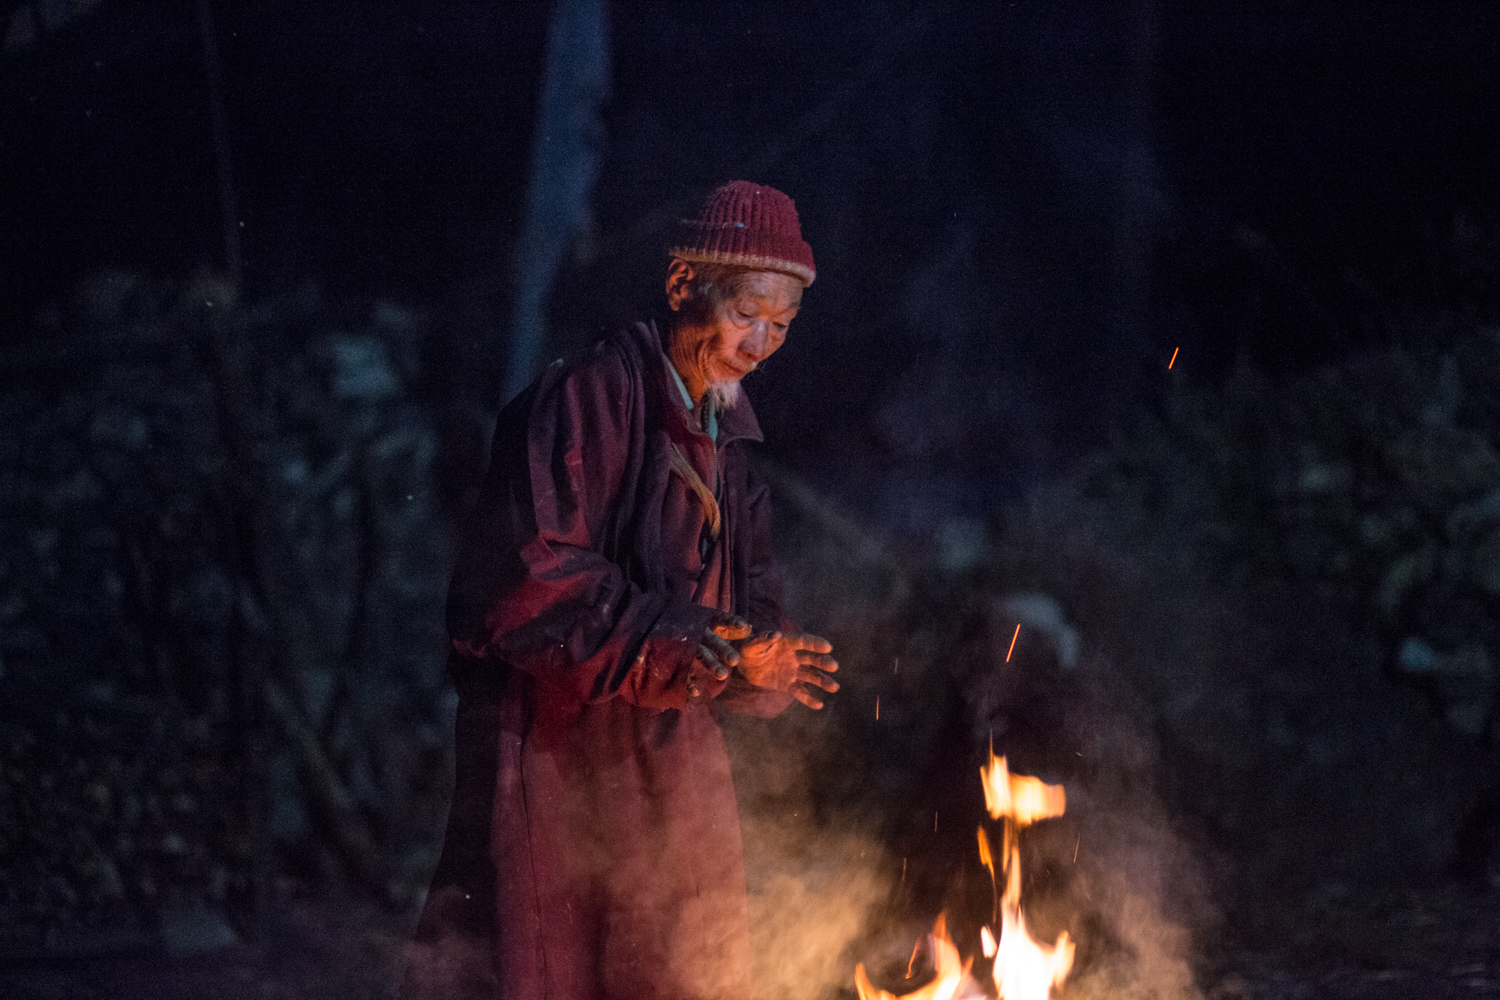 A villager keeps warm by a fire in the village of Namrung located in the Manaslu reserve.